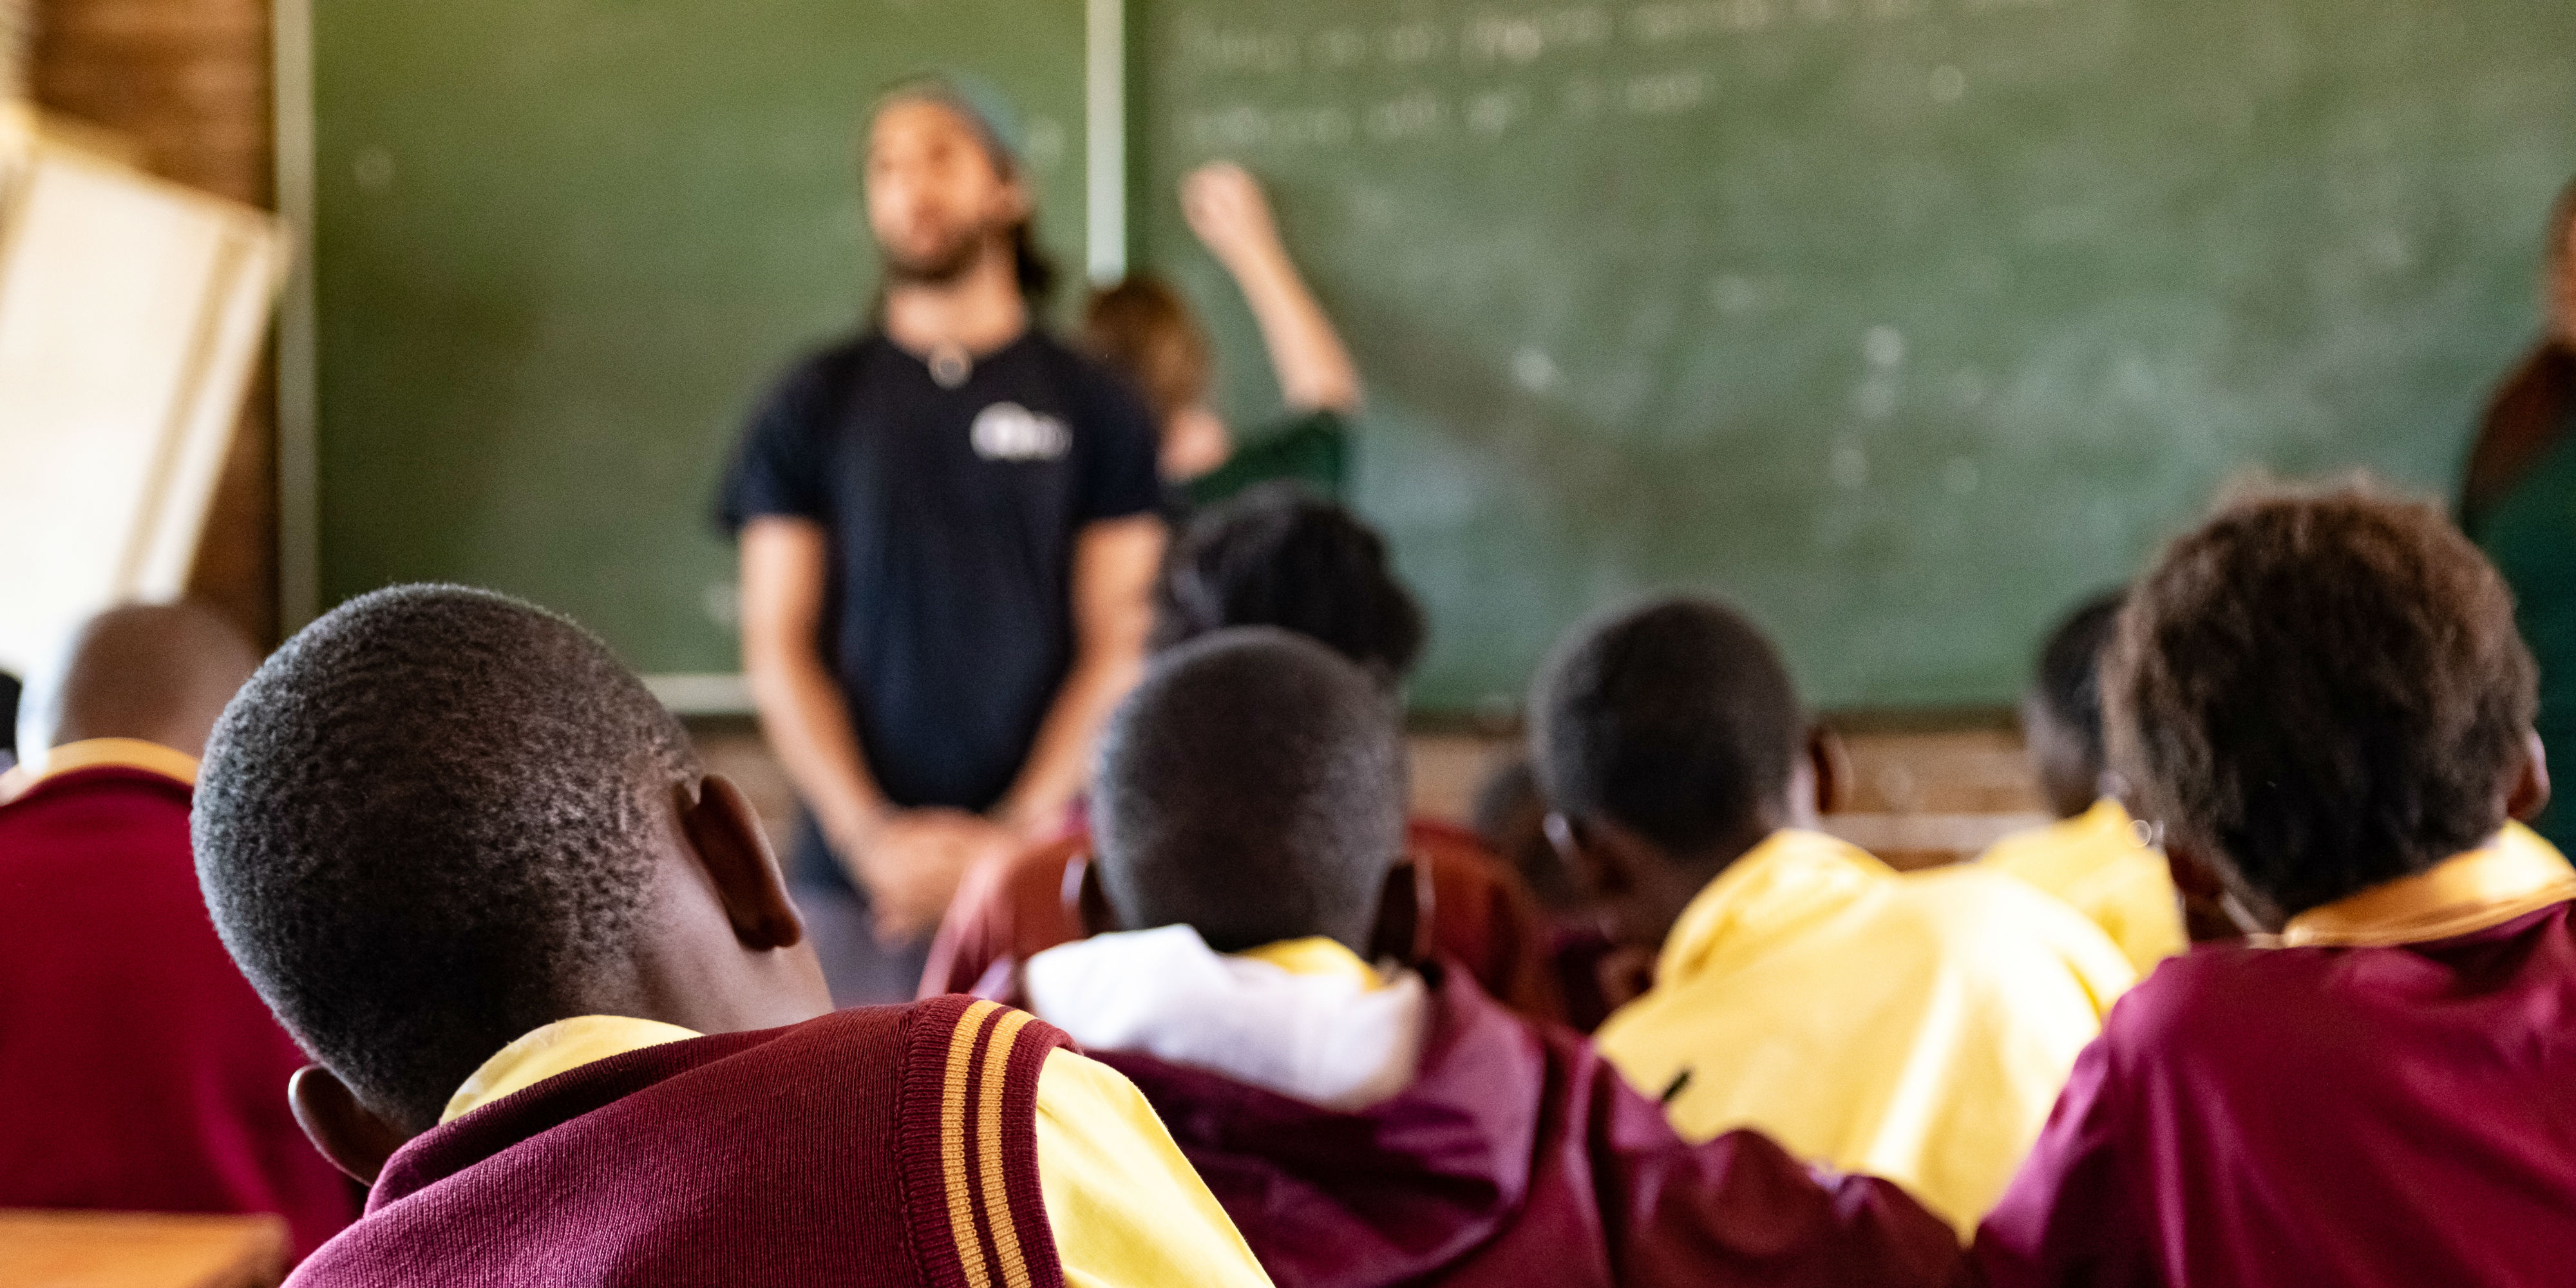 Teach English abroad interns lead a lesson in a school in Limpopo, South Africa.